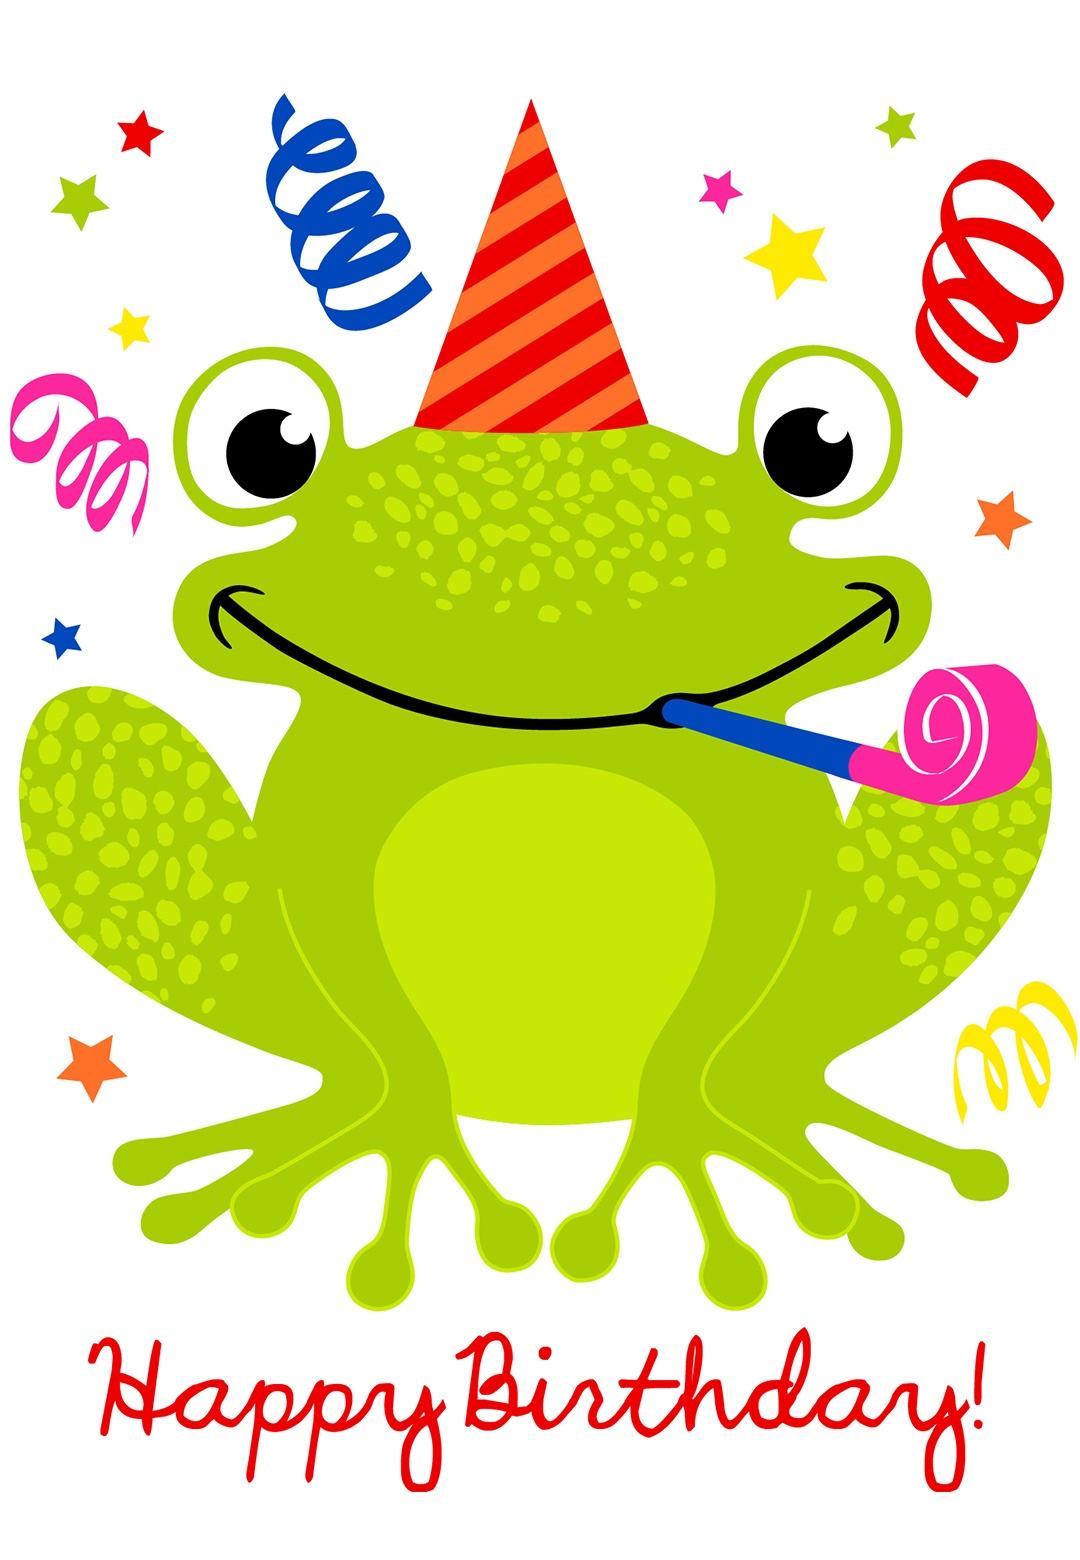 Cute Smiling Frog Birthday Card | Greetings Island - Free Printable Birthday Cards For Kids